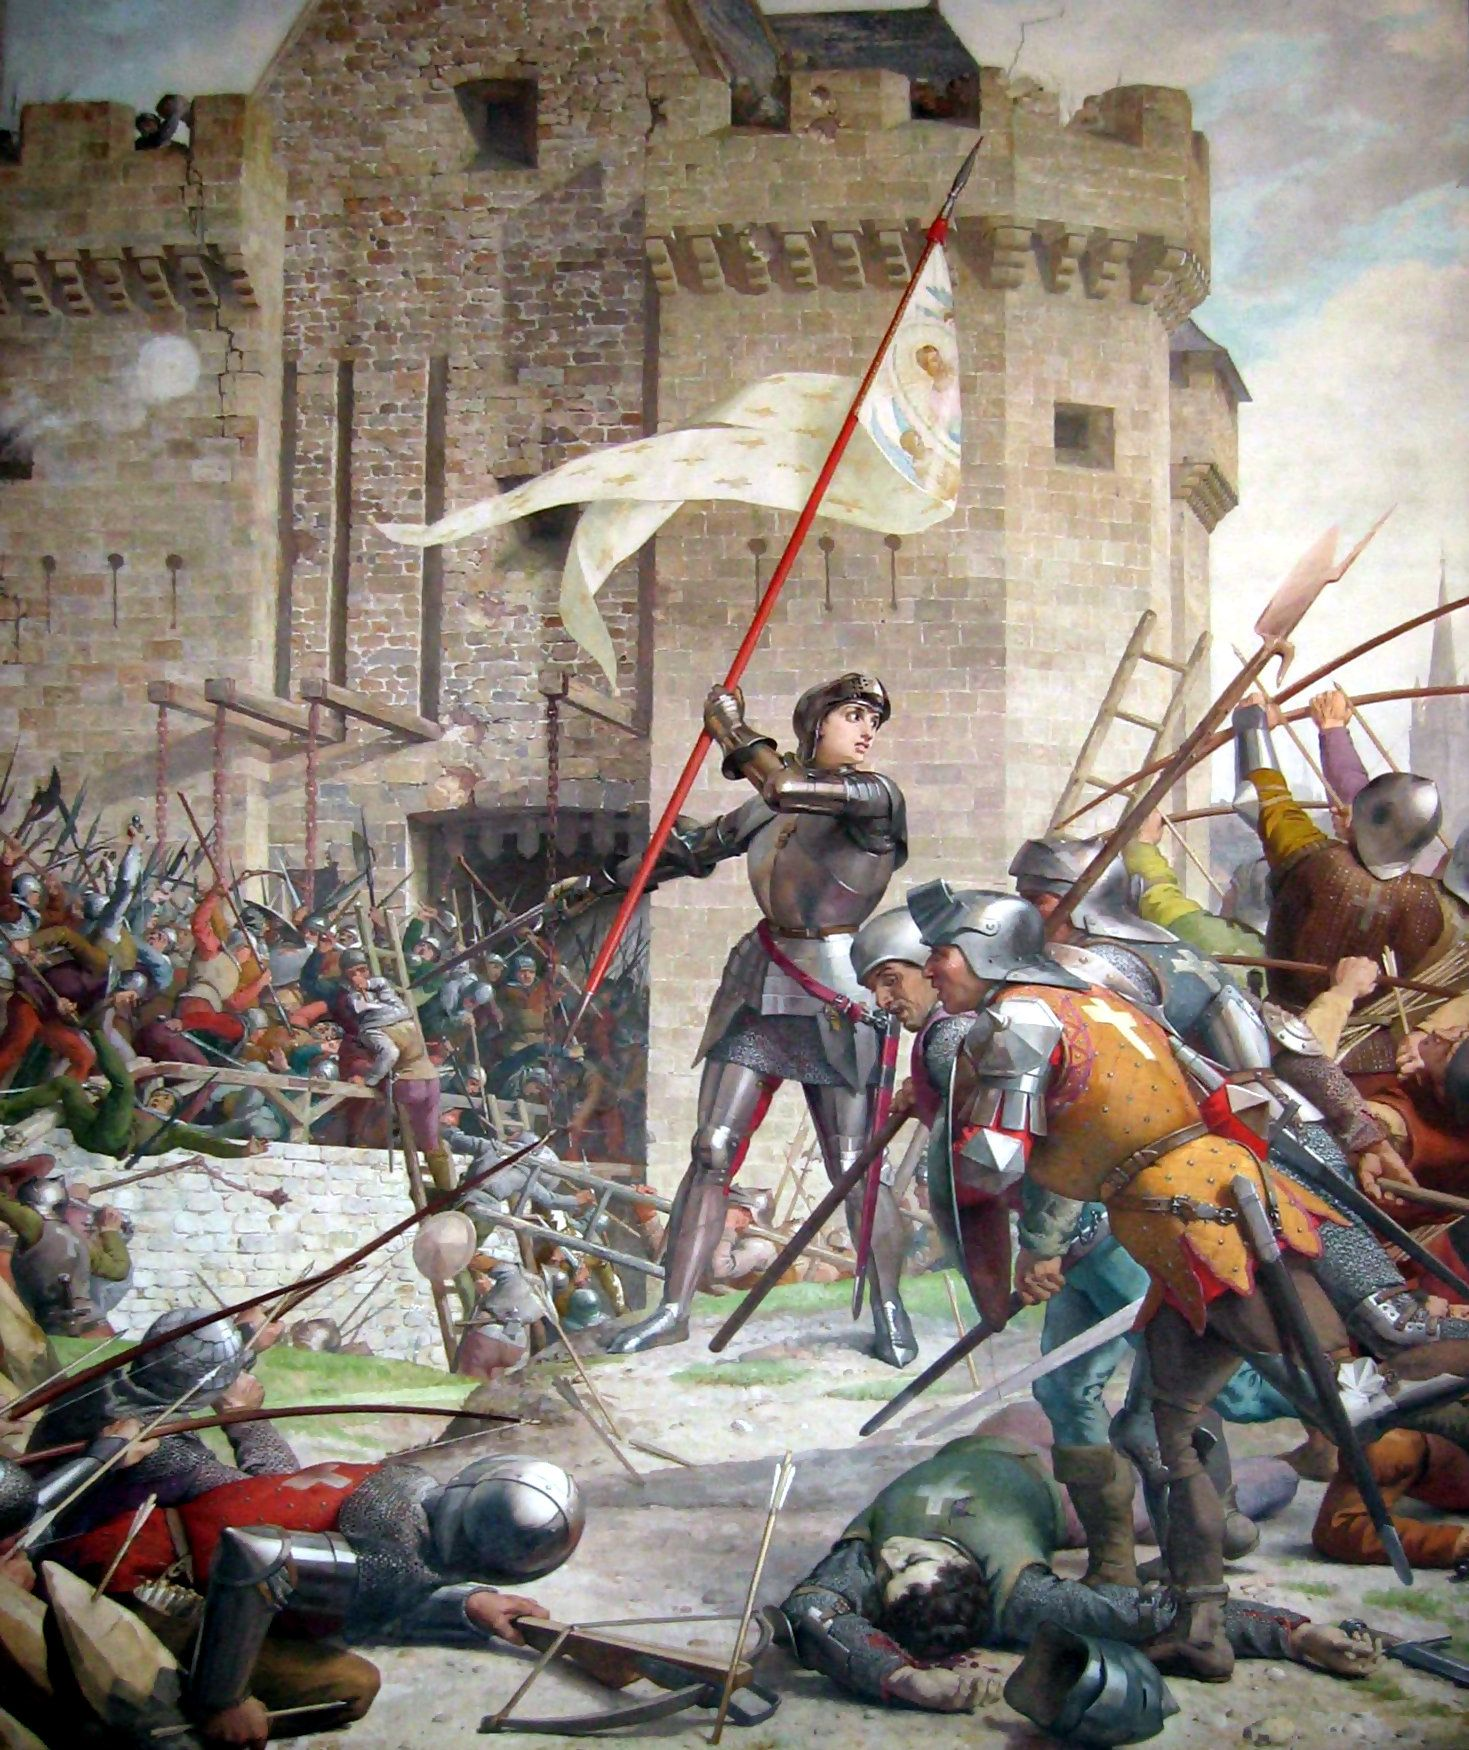 the created agincourt in literature extract from agincourt the jeanne d arc at the siege of orleans hundred years war